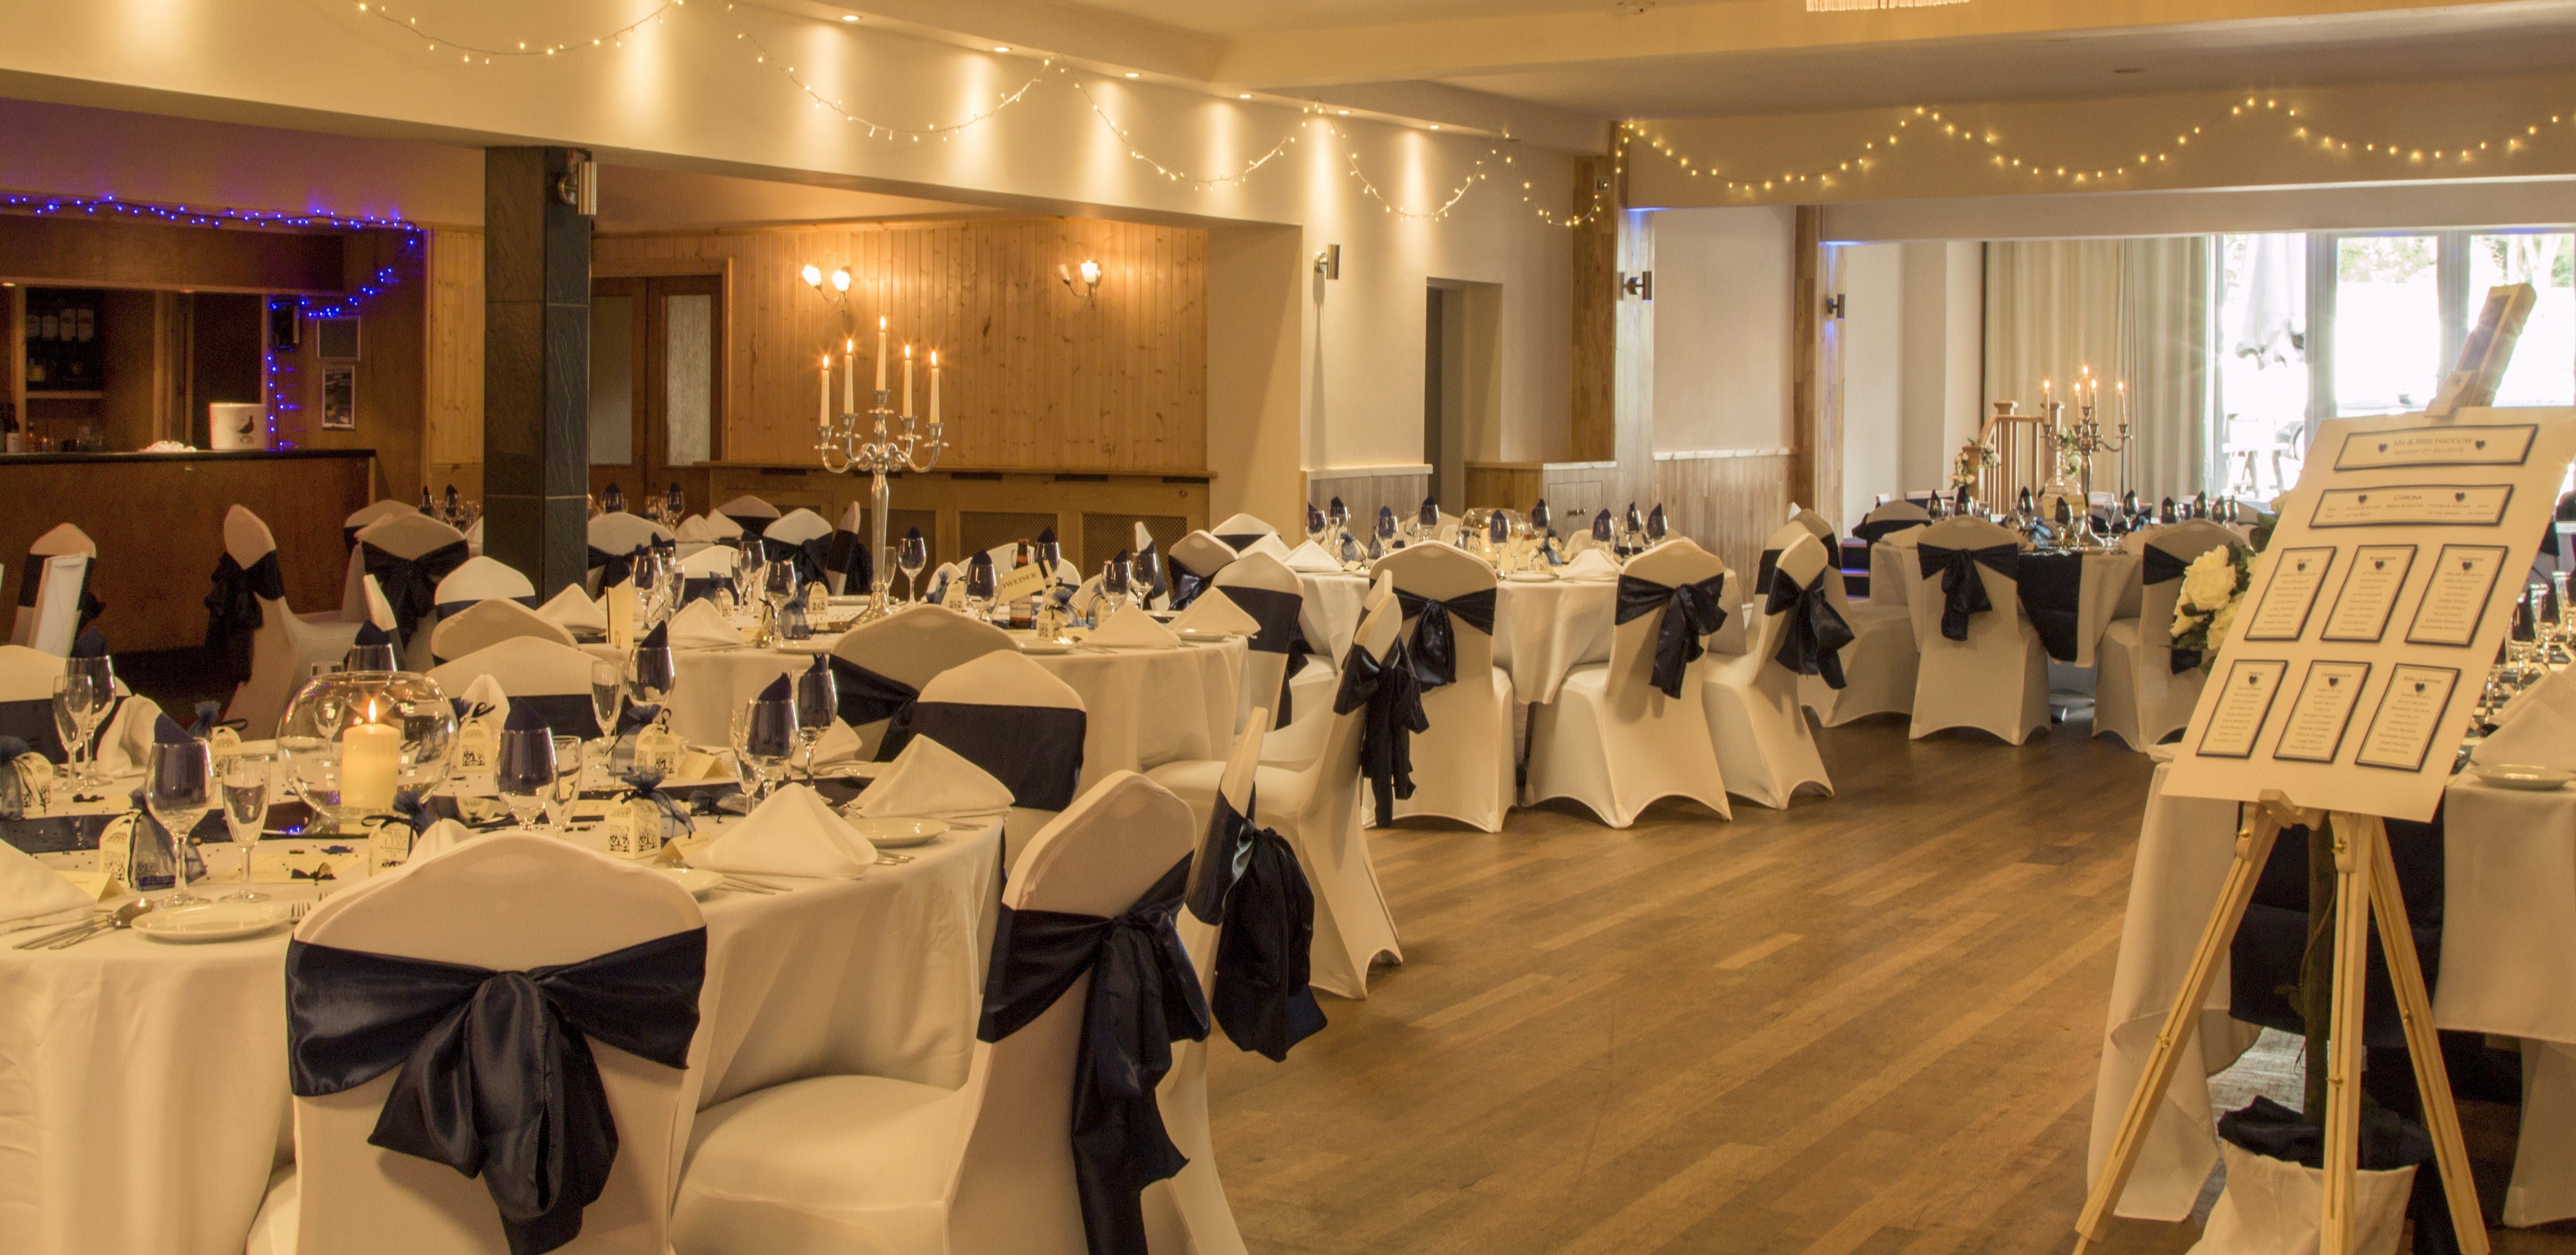 Nithsdale Hotel_Sanquhar Wedding_Function Room